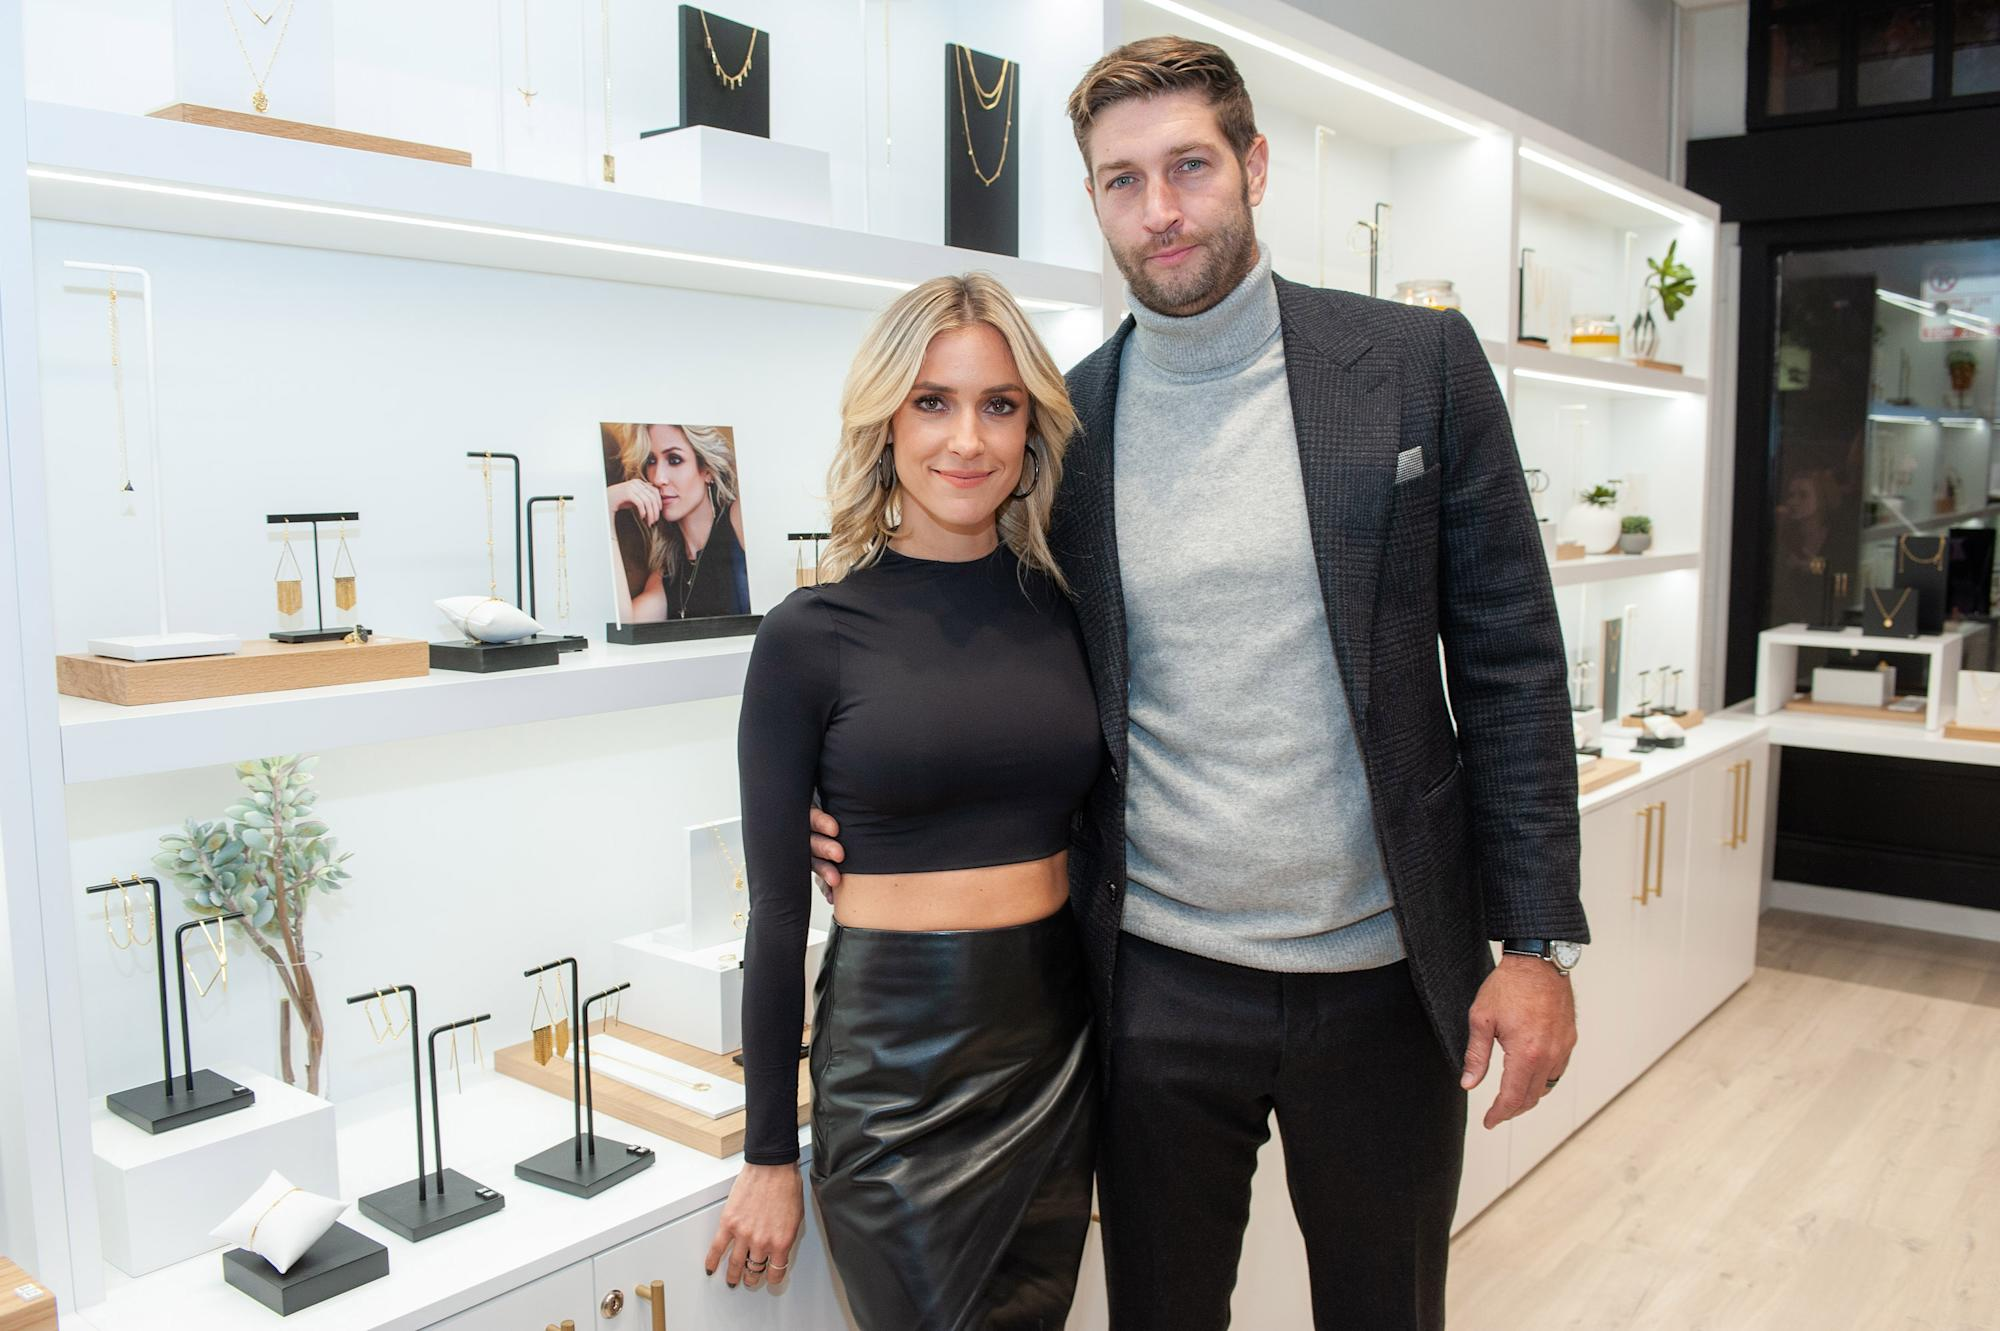 Kristin Cavallari says she's 'back to my old self' amid split from Jay Cutler: 'It feels really damn good'